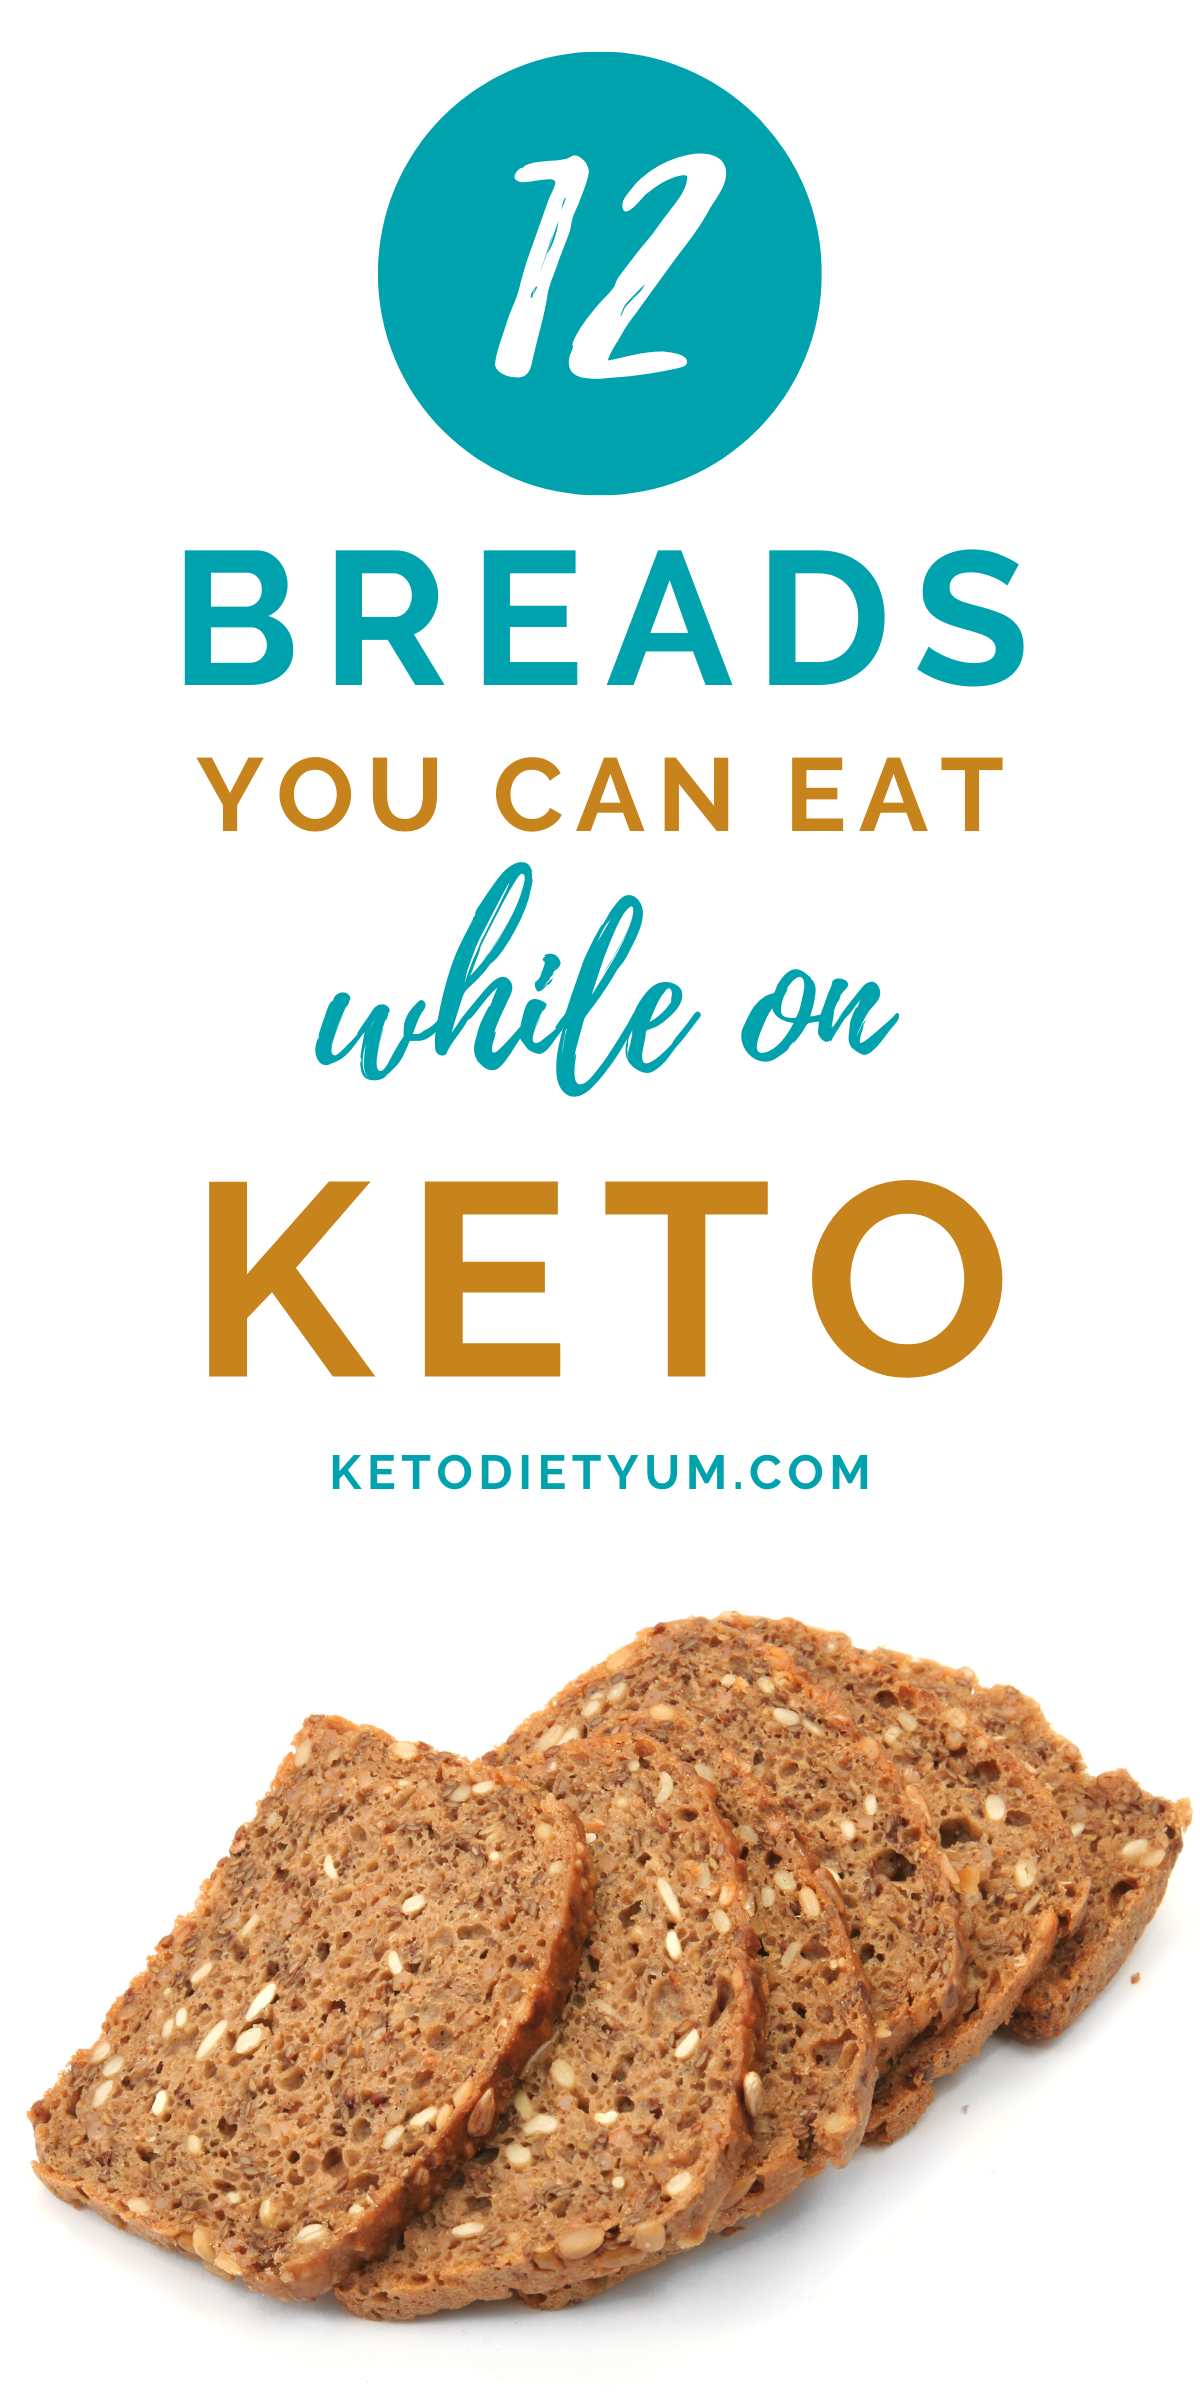 12 Breads You Can Eat On The Keto Diet